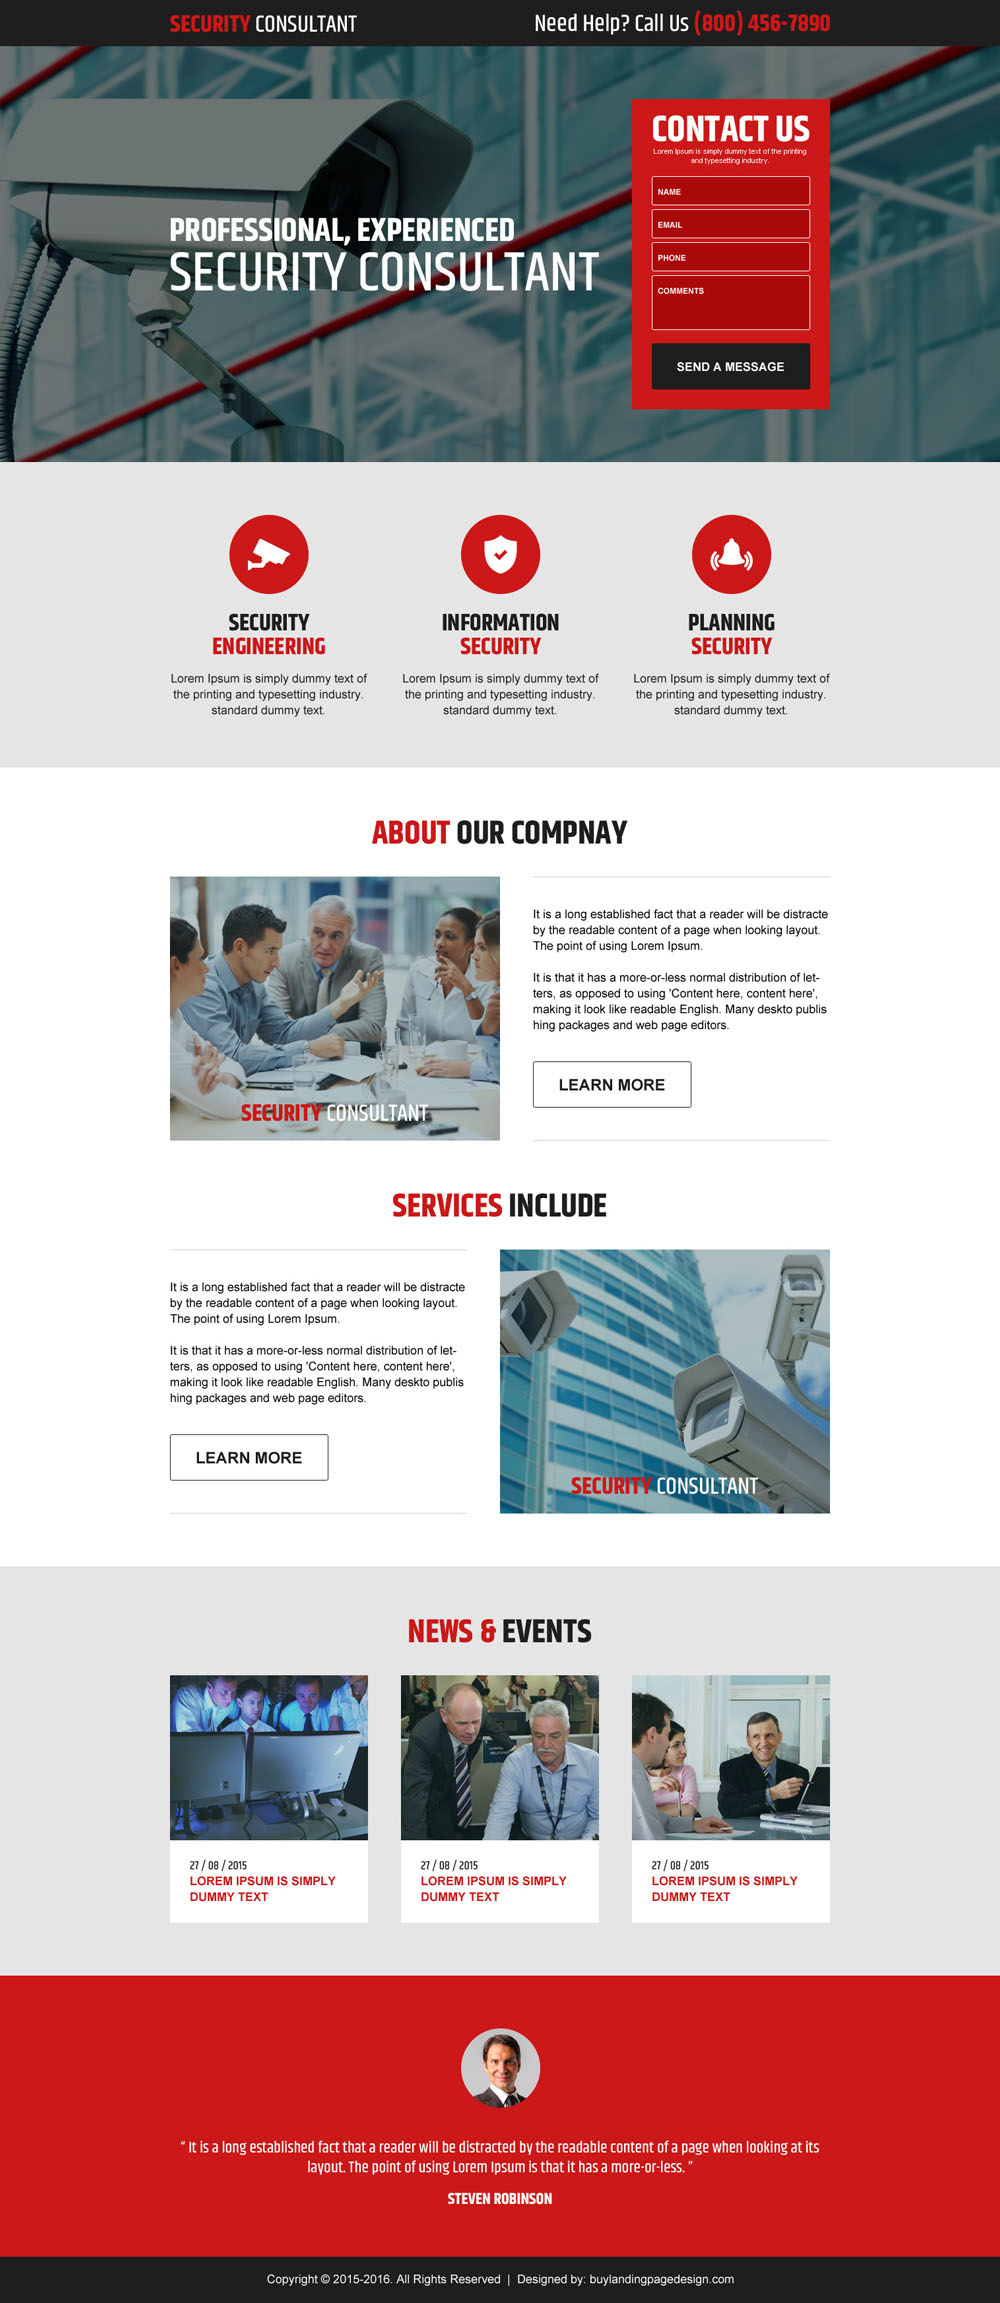 professional-security-consultant-lead-capture-landing-page-design-007